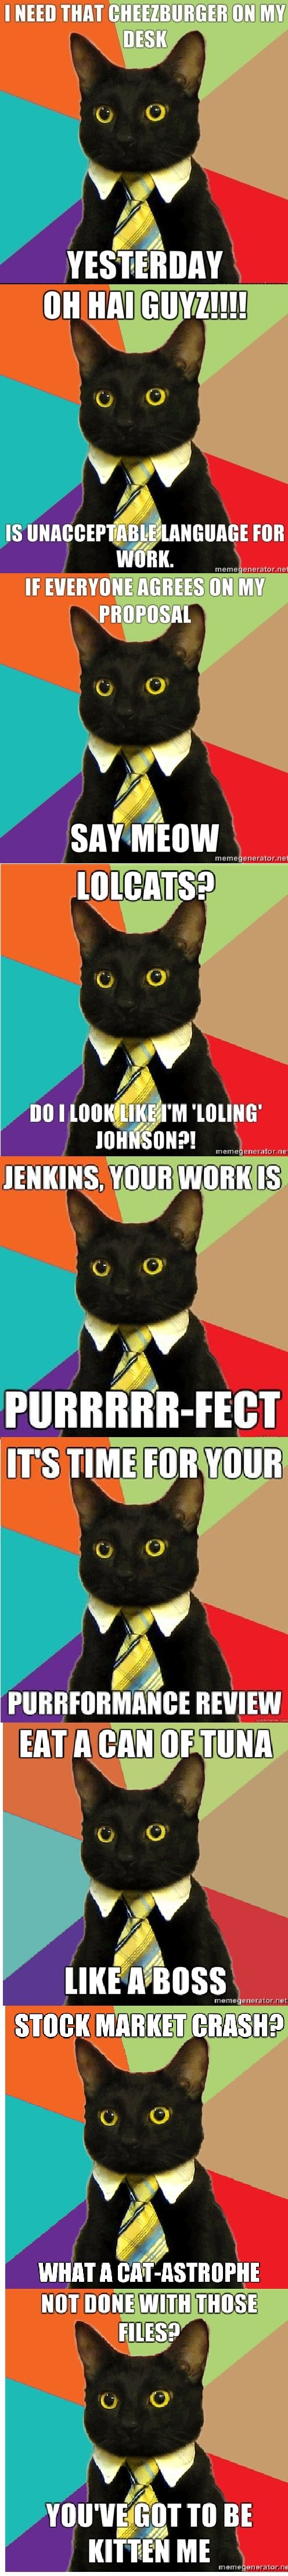 """Business Cat Comp. I'll post more, regardless of thumbs<br /> Edit: FRONT PAGE! HOLY ! THANK YOU VERY MUCH!!!!. Milan ' JENKINS"""". You WIN"""" stung: MARKET l"""